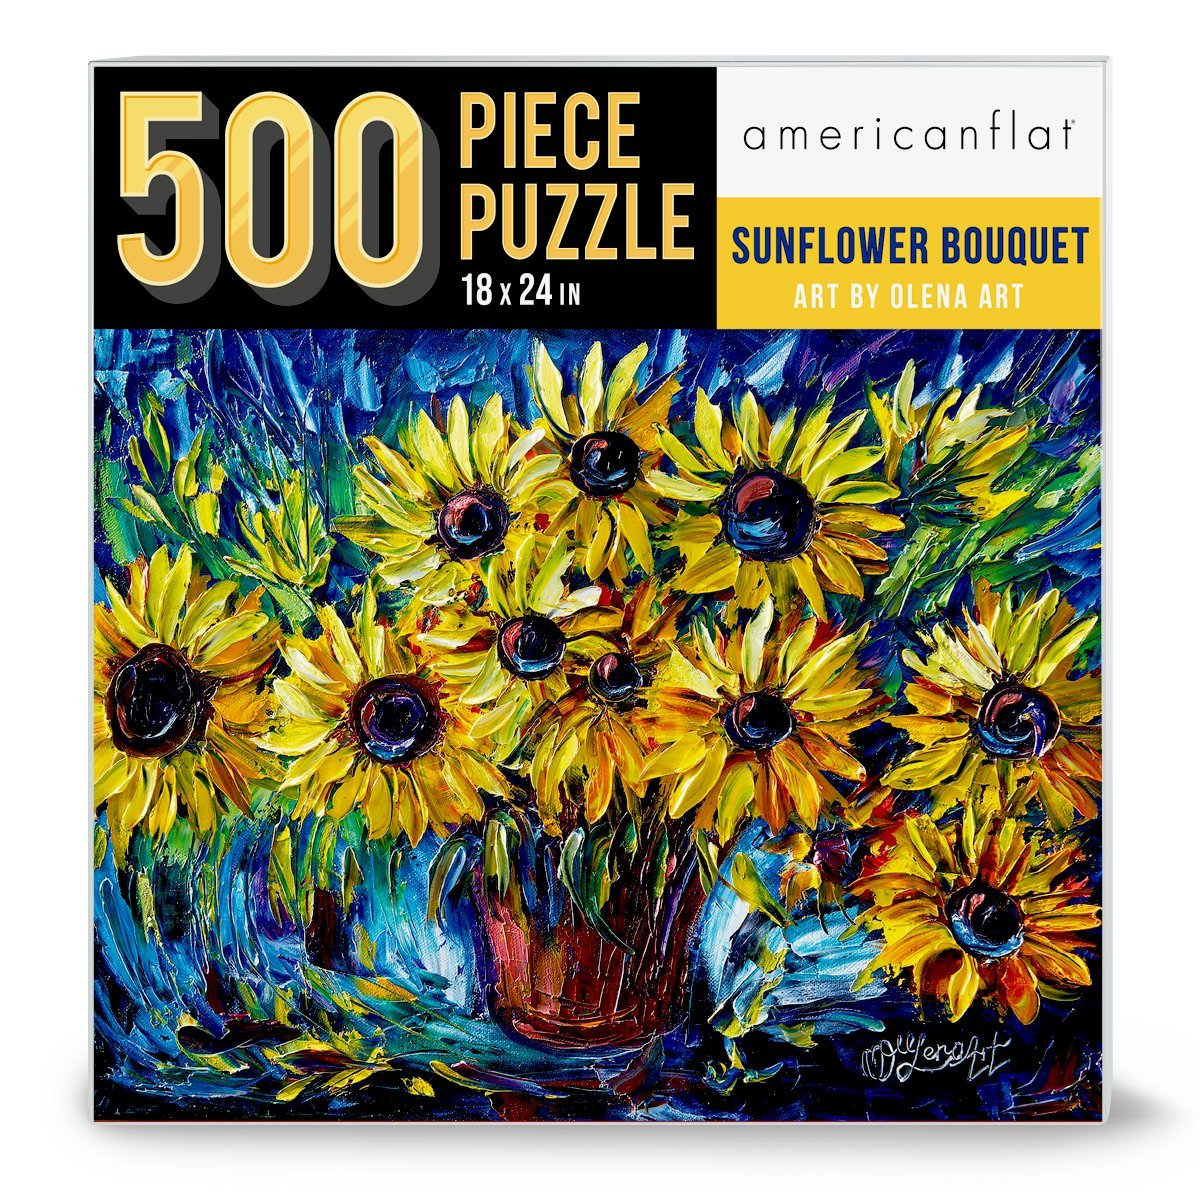 "500 Piece Jigsaw Puzzle, 18x24 Inches, ""Sunflowers"" Artwork by OLena Art - Jigsaw Puzzle - Americanflat"